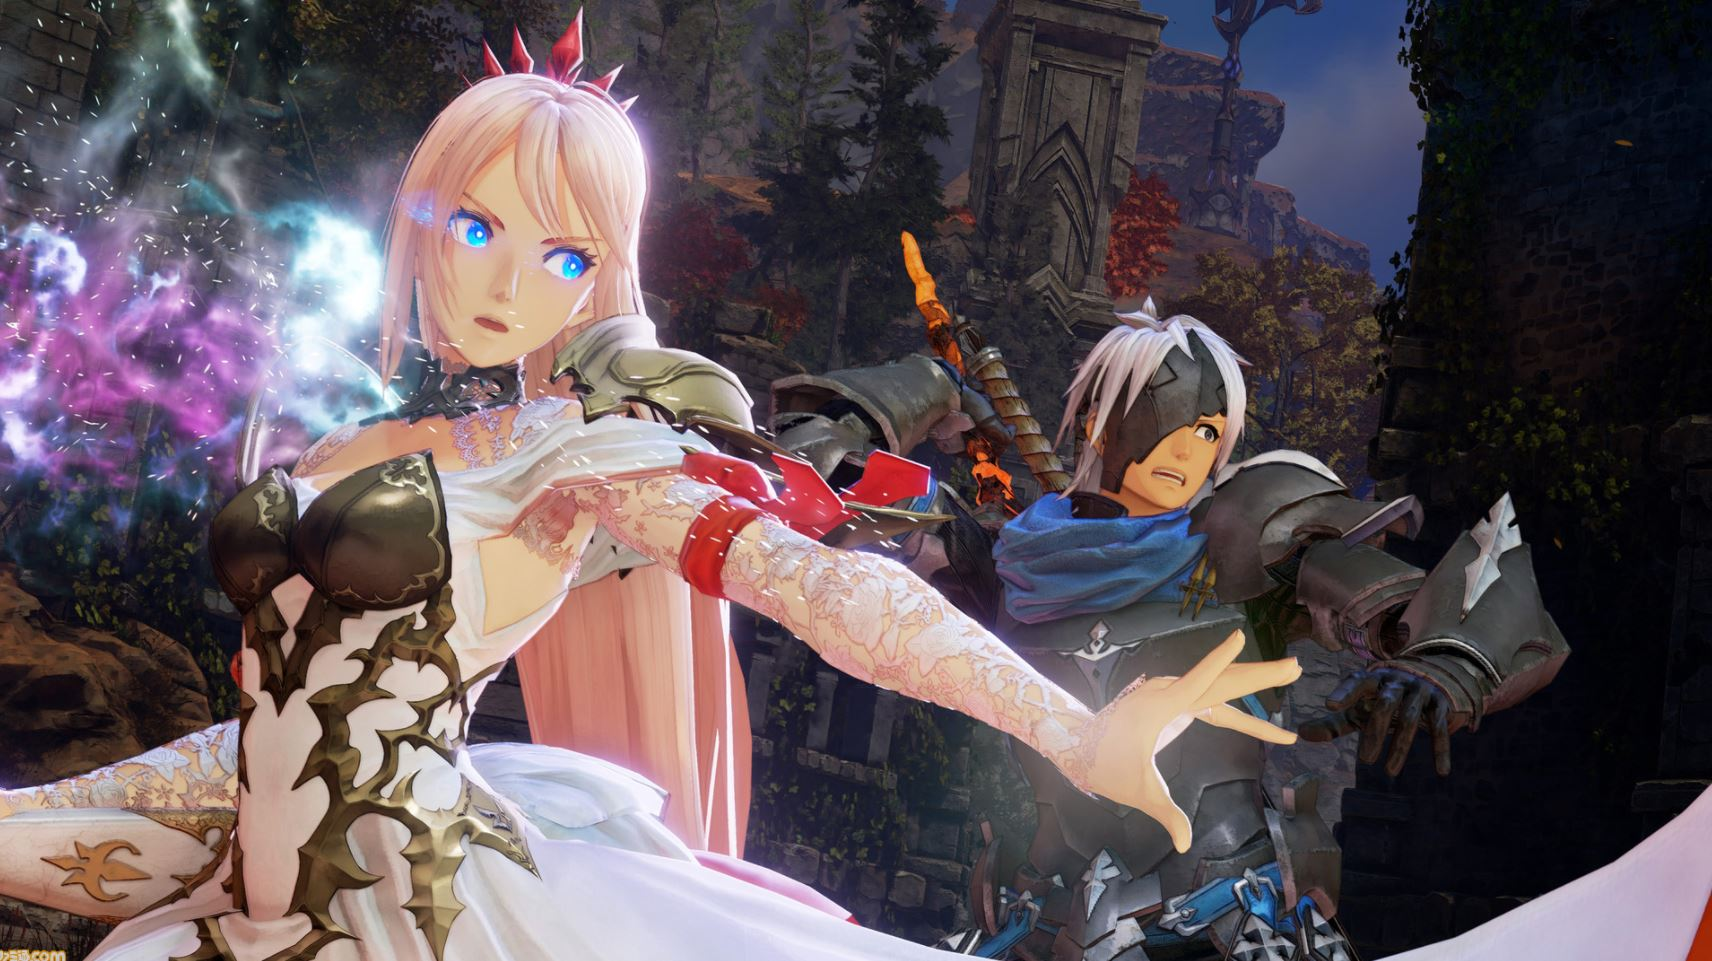 tales-of-arise-ps4-and-ps5-release-date-set-for-september-new-gameplay-footage-released